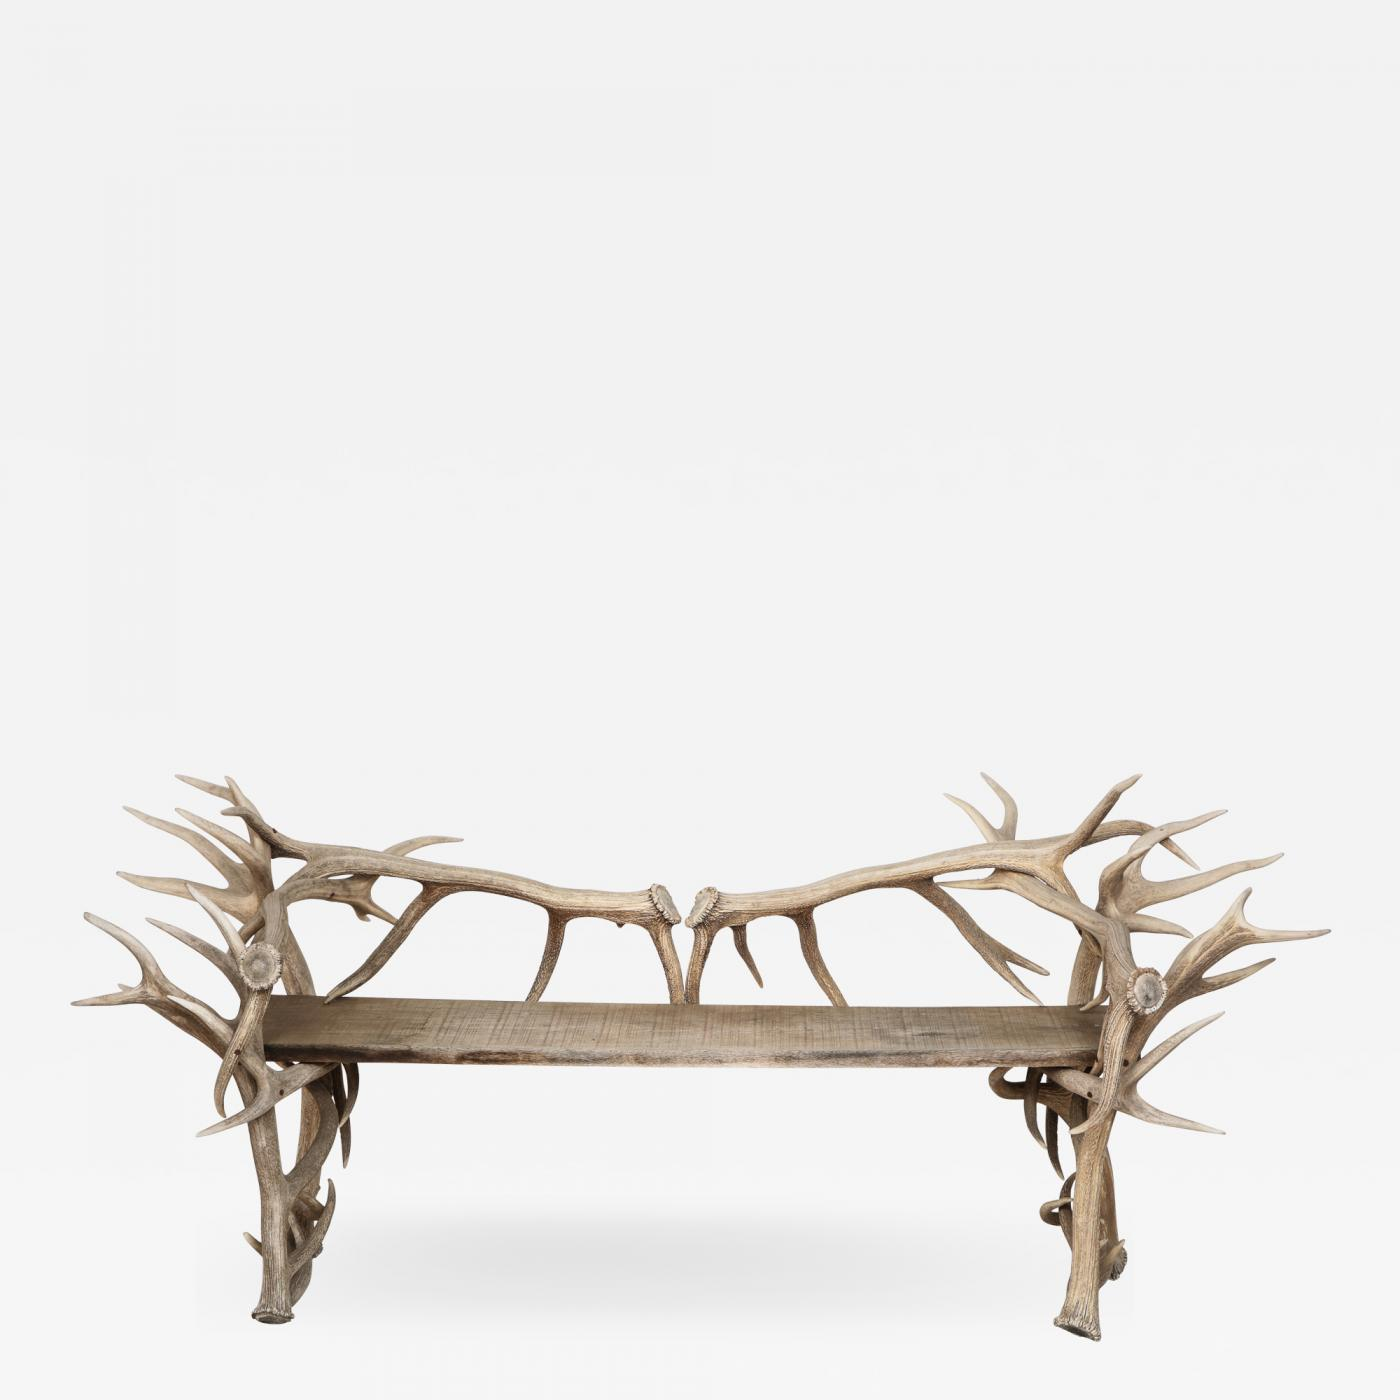 Spectacular Antler Chair / Bench